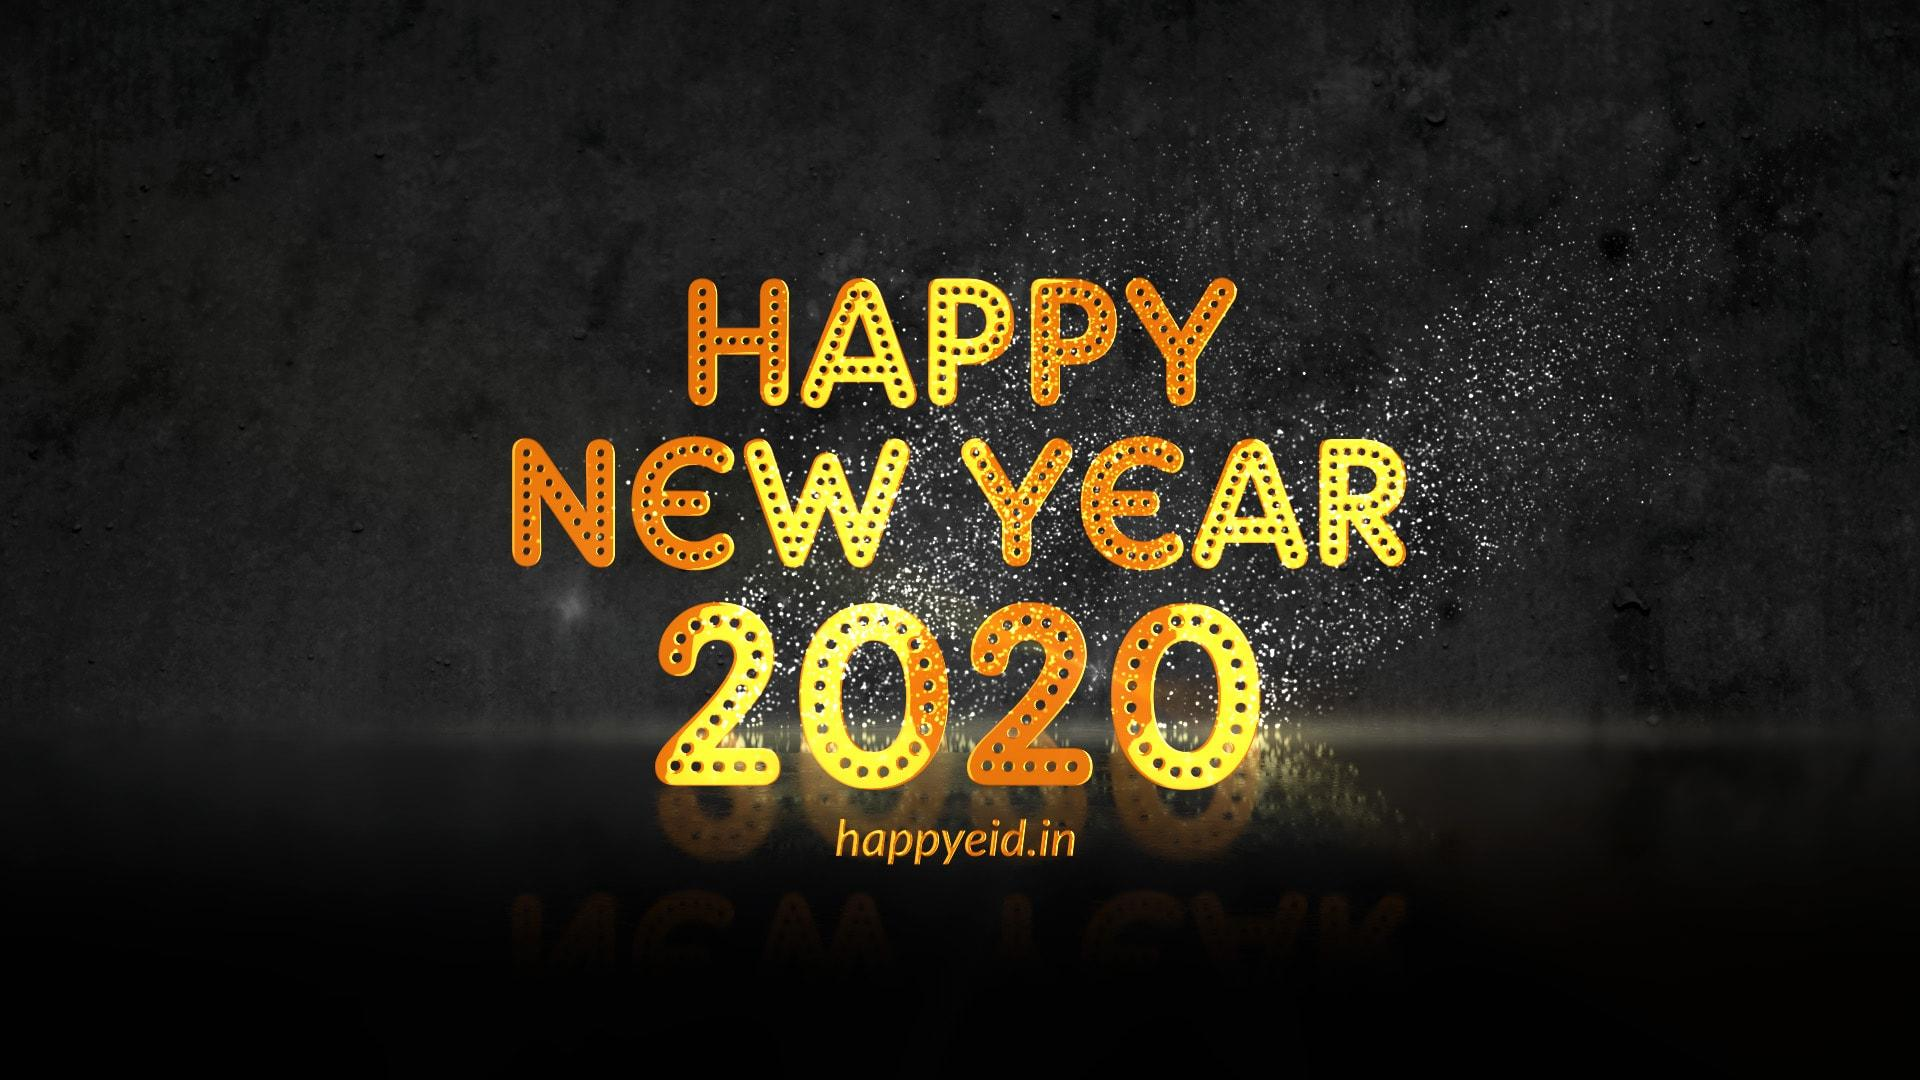 Happy New Year 2020 GIF Image, Wishes & Greetings